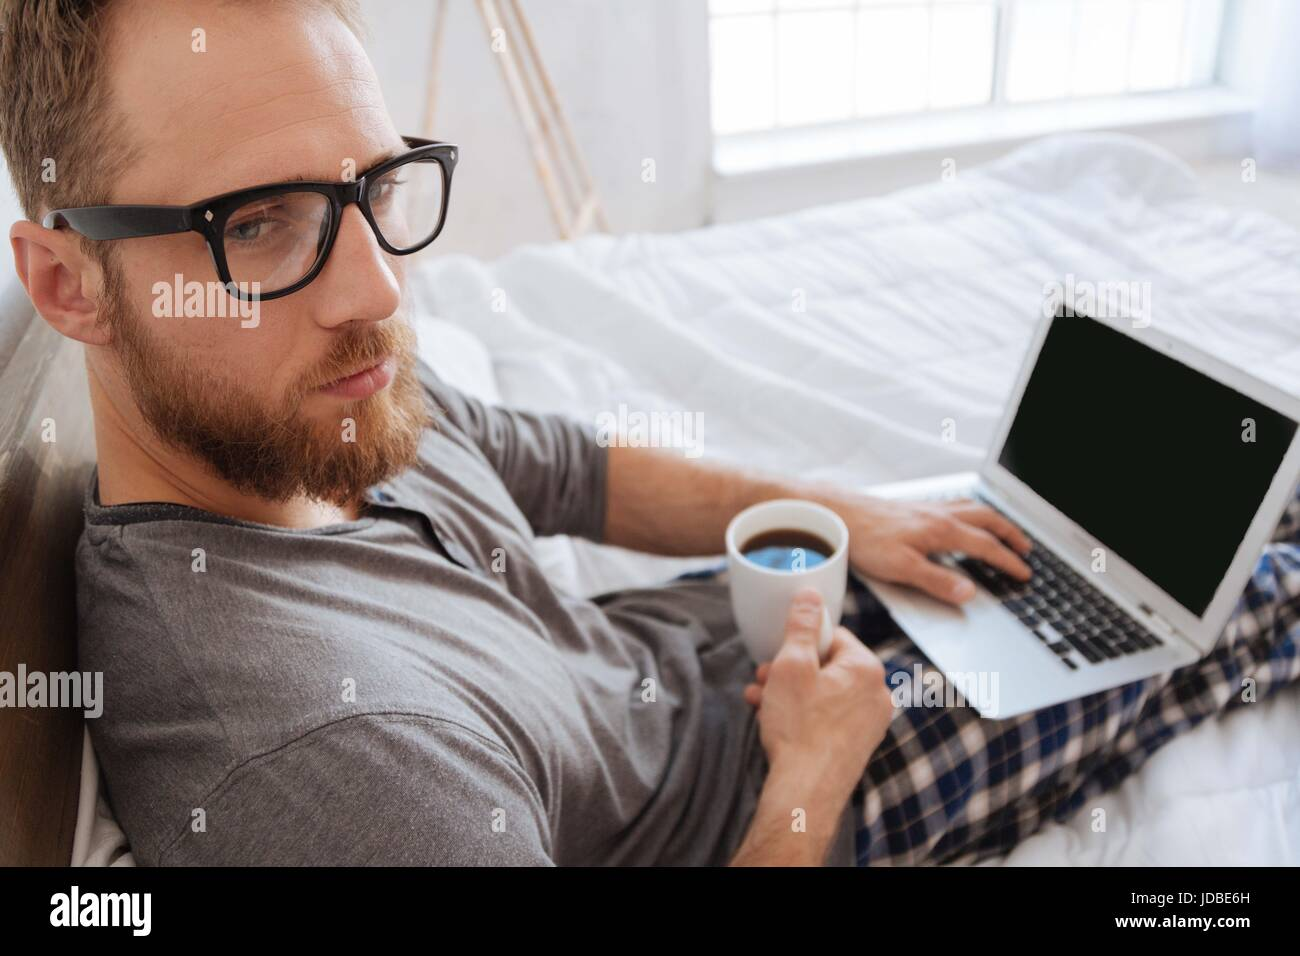 Bearded man sitting on bed with coffee and laptop - Stock Image